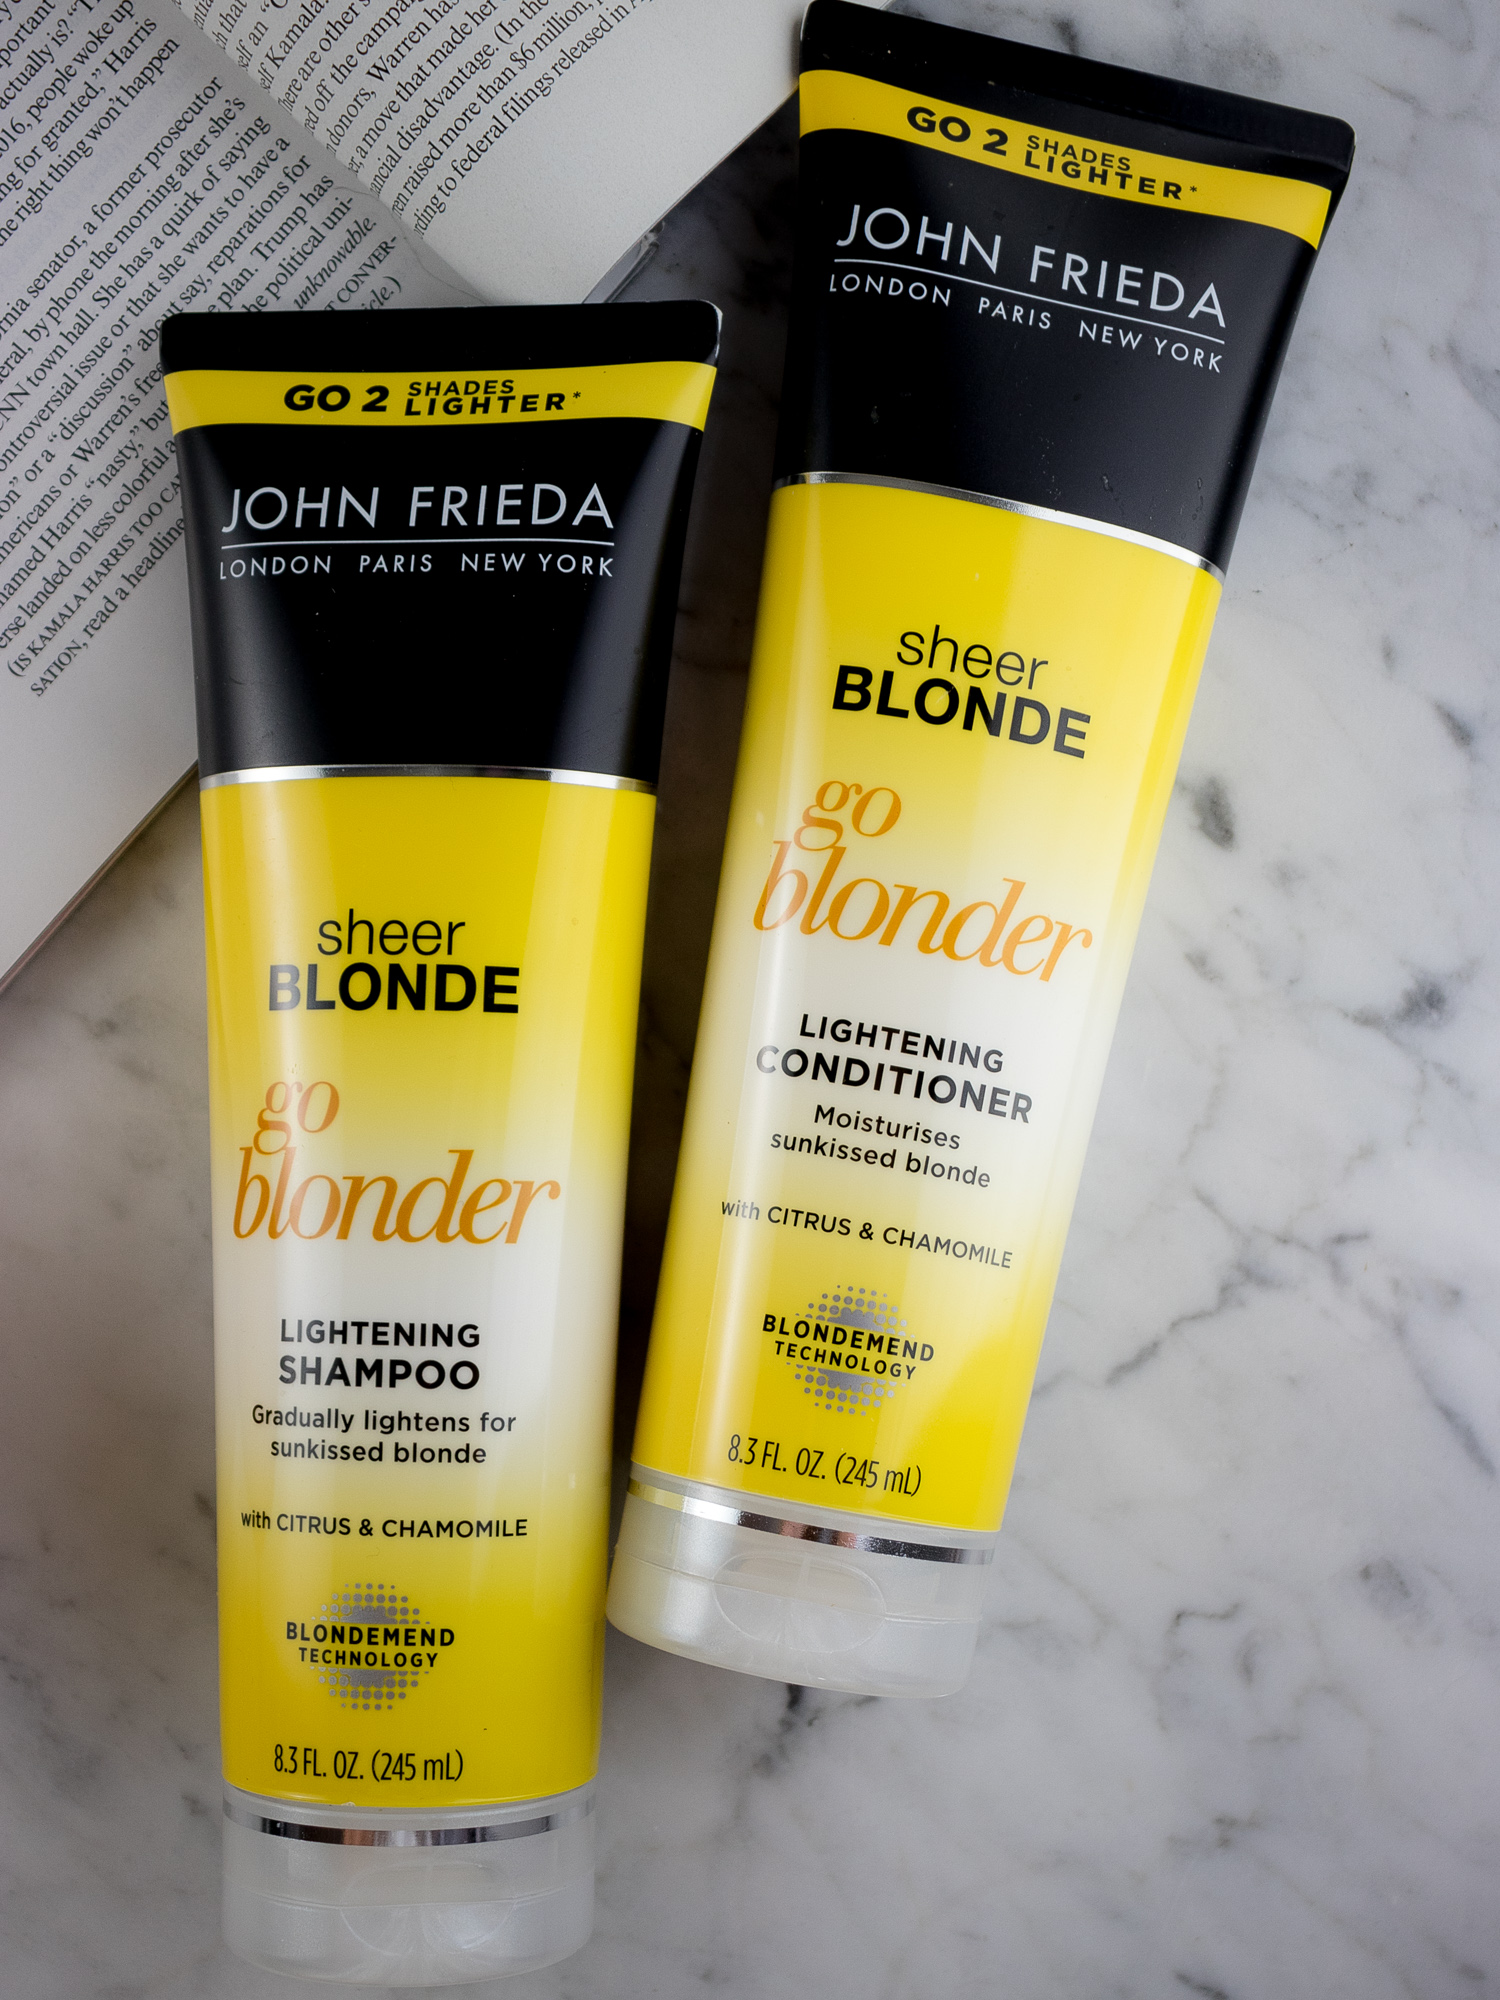 John Frieda Go Blonder Lightening Shampoo and Conditioner